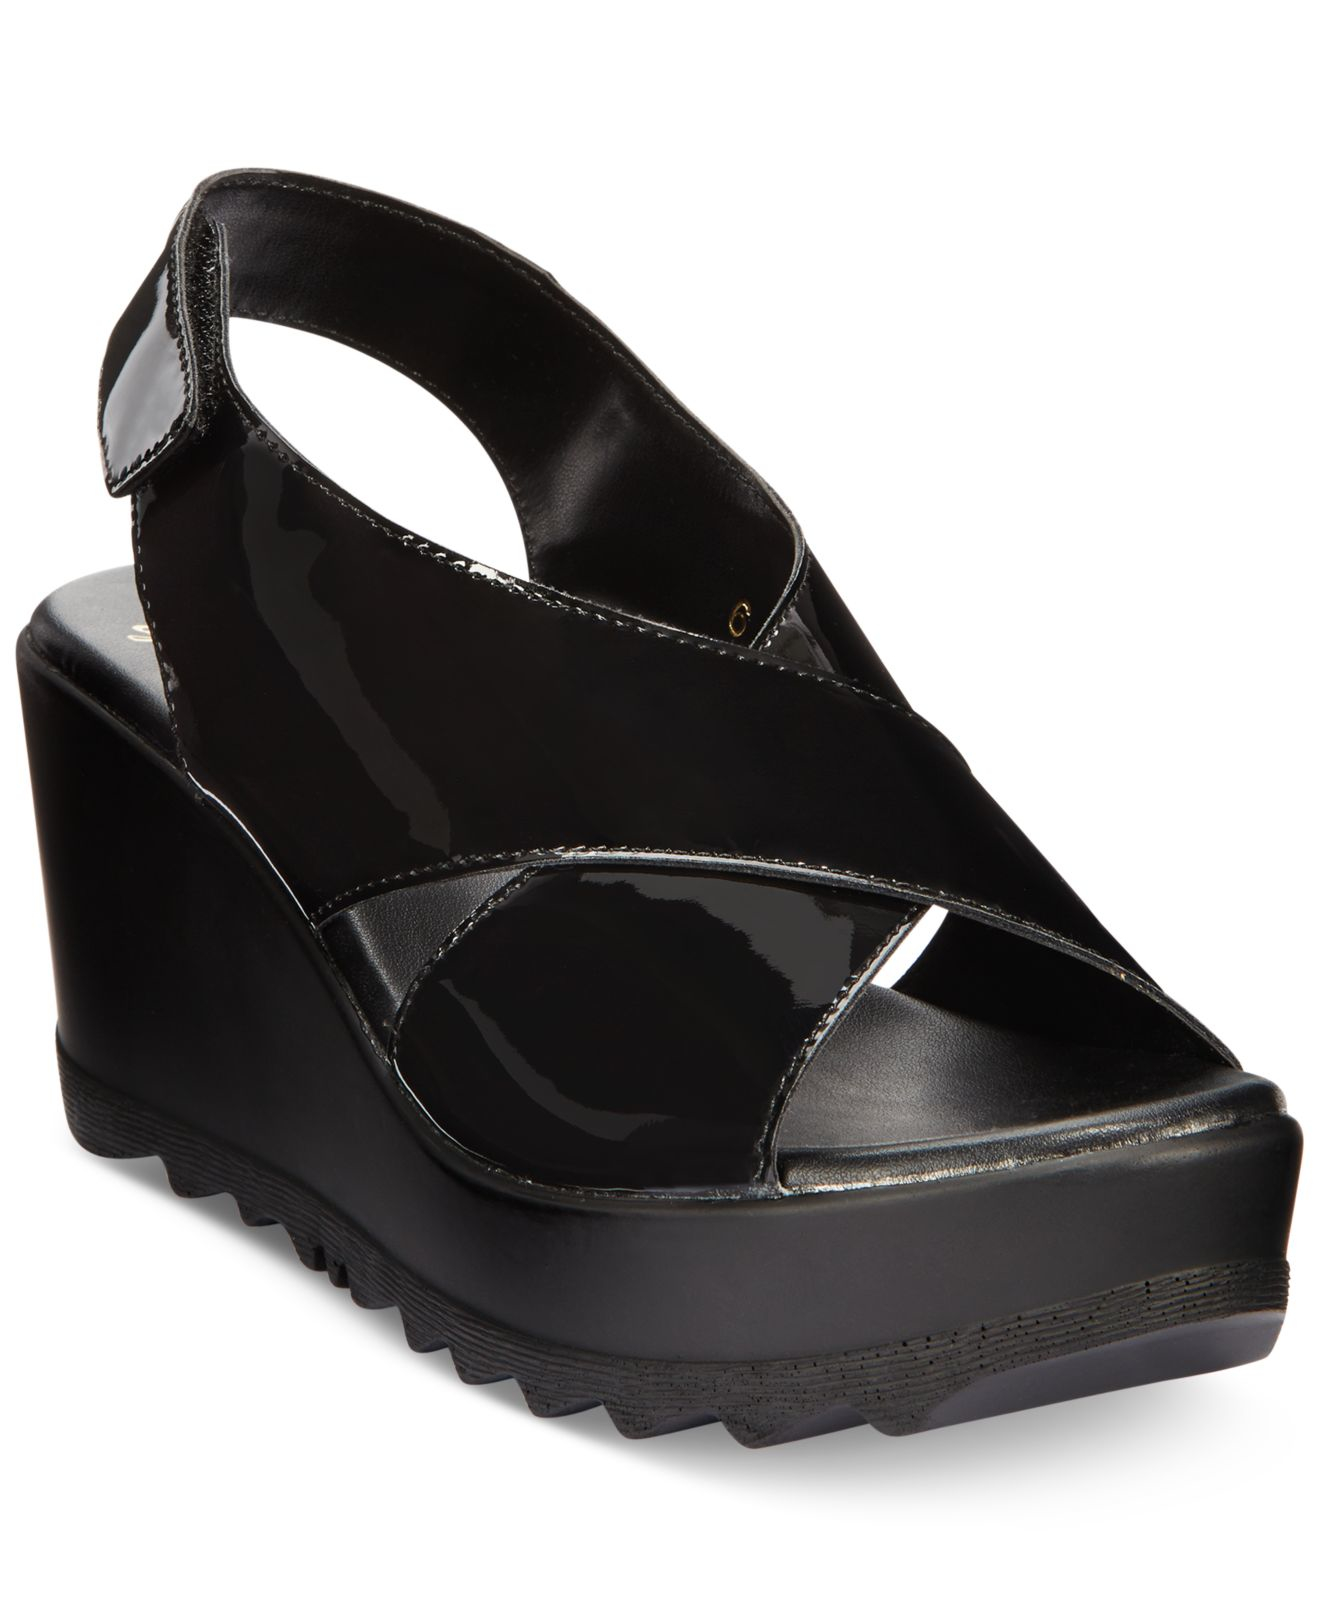 Free shipping on women's wedge sandals at heresfilmz8.ga Shop the latest styles from the best brands like Steve Madden, Sam Edelman, Vince Camuto and more. Totally free shipping and returns.